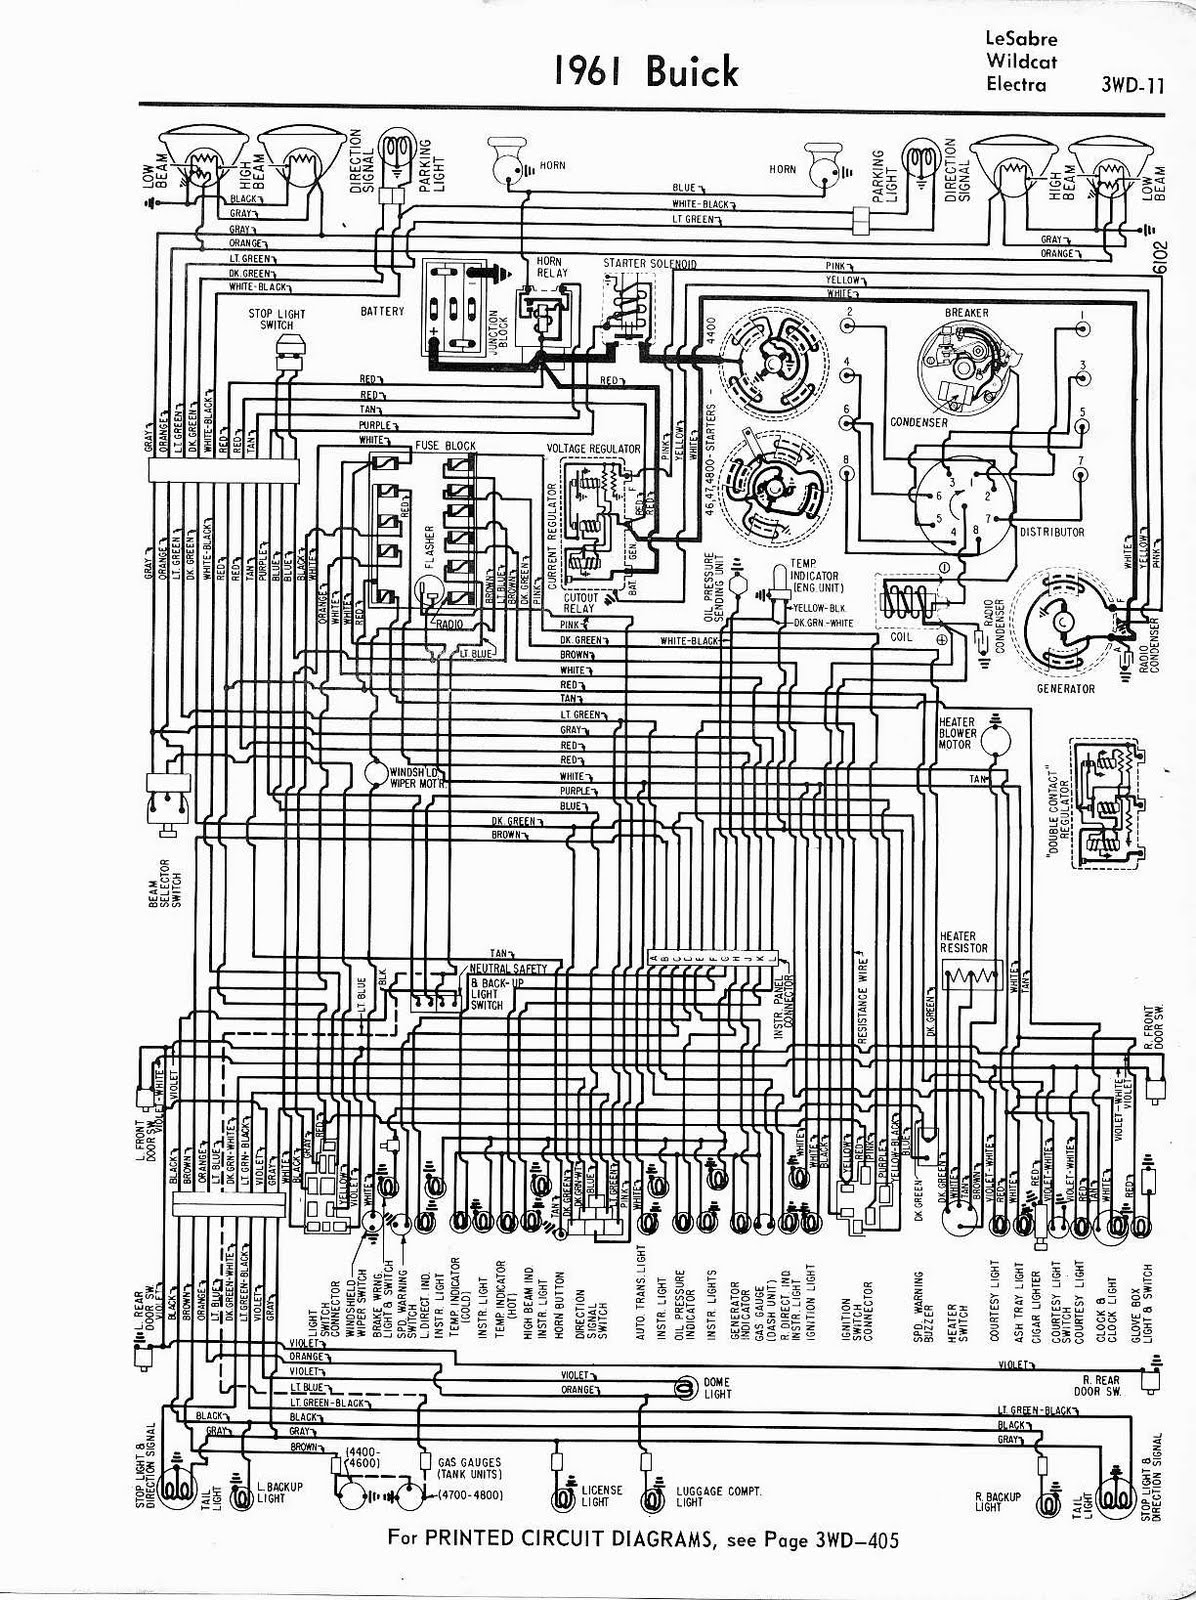 D Trailer Wiring Diagram Truck Side Trailo likewise Boost Ecu Pinout besides F besides Pic further Dodge Grand Caravan Montreal Rive Nord Exterieur. on dodge ram 2500 wiring diagram 2008